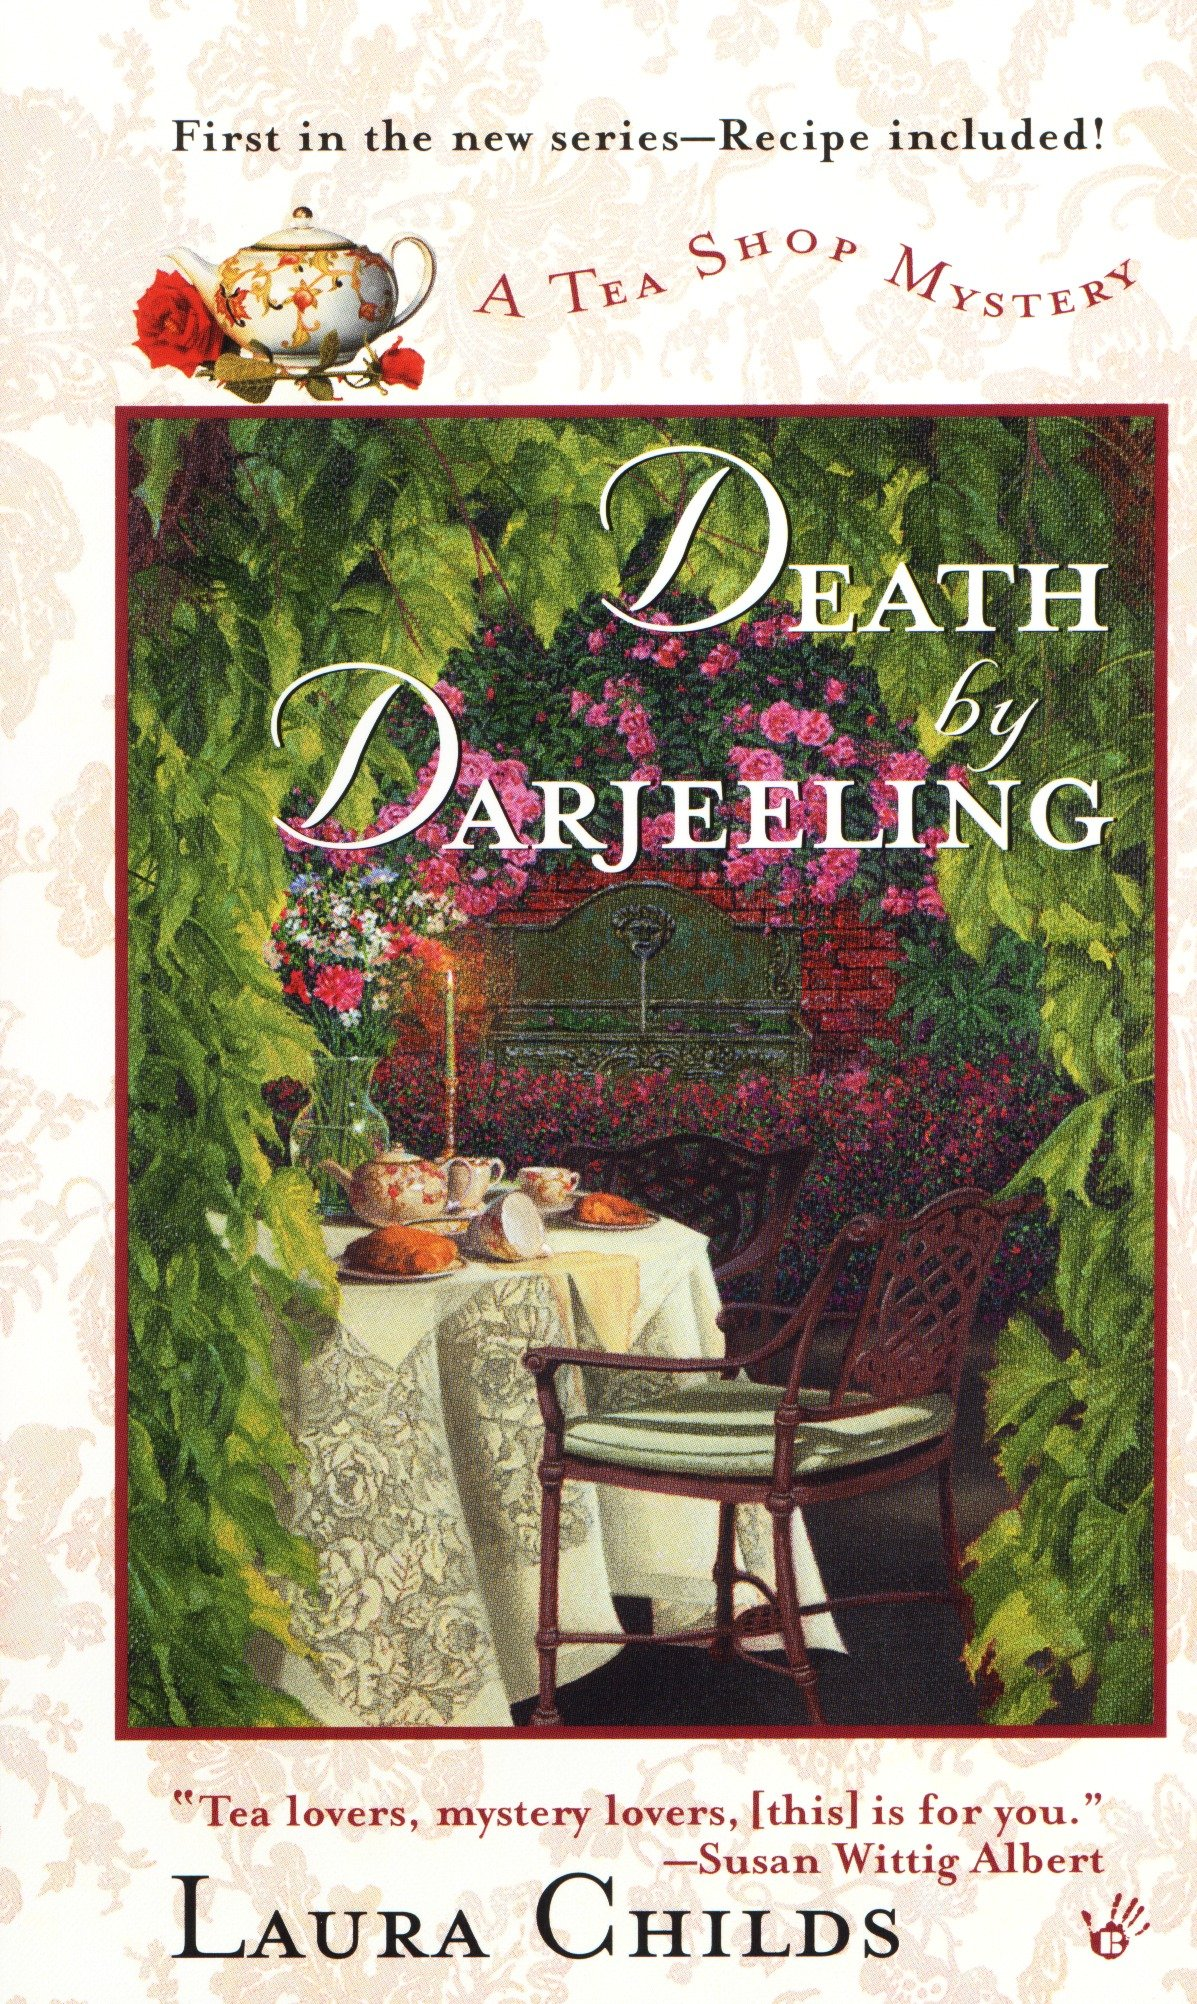 Death by darjeeling cover image